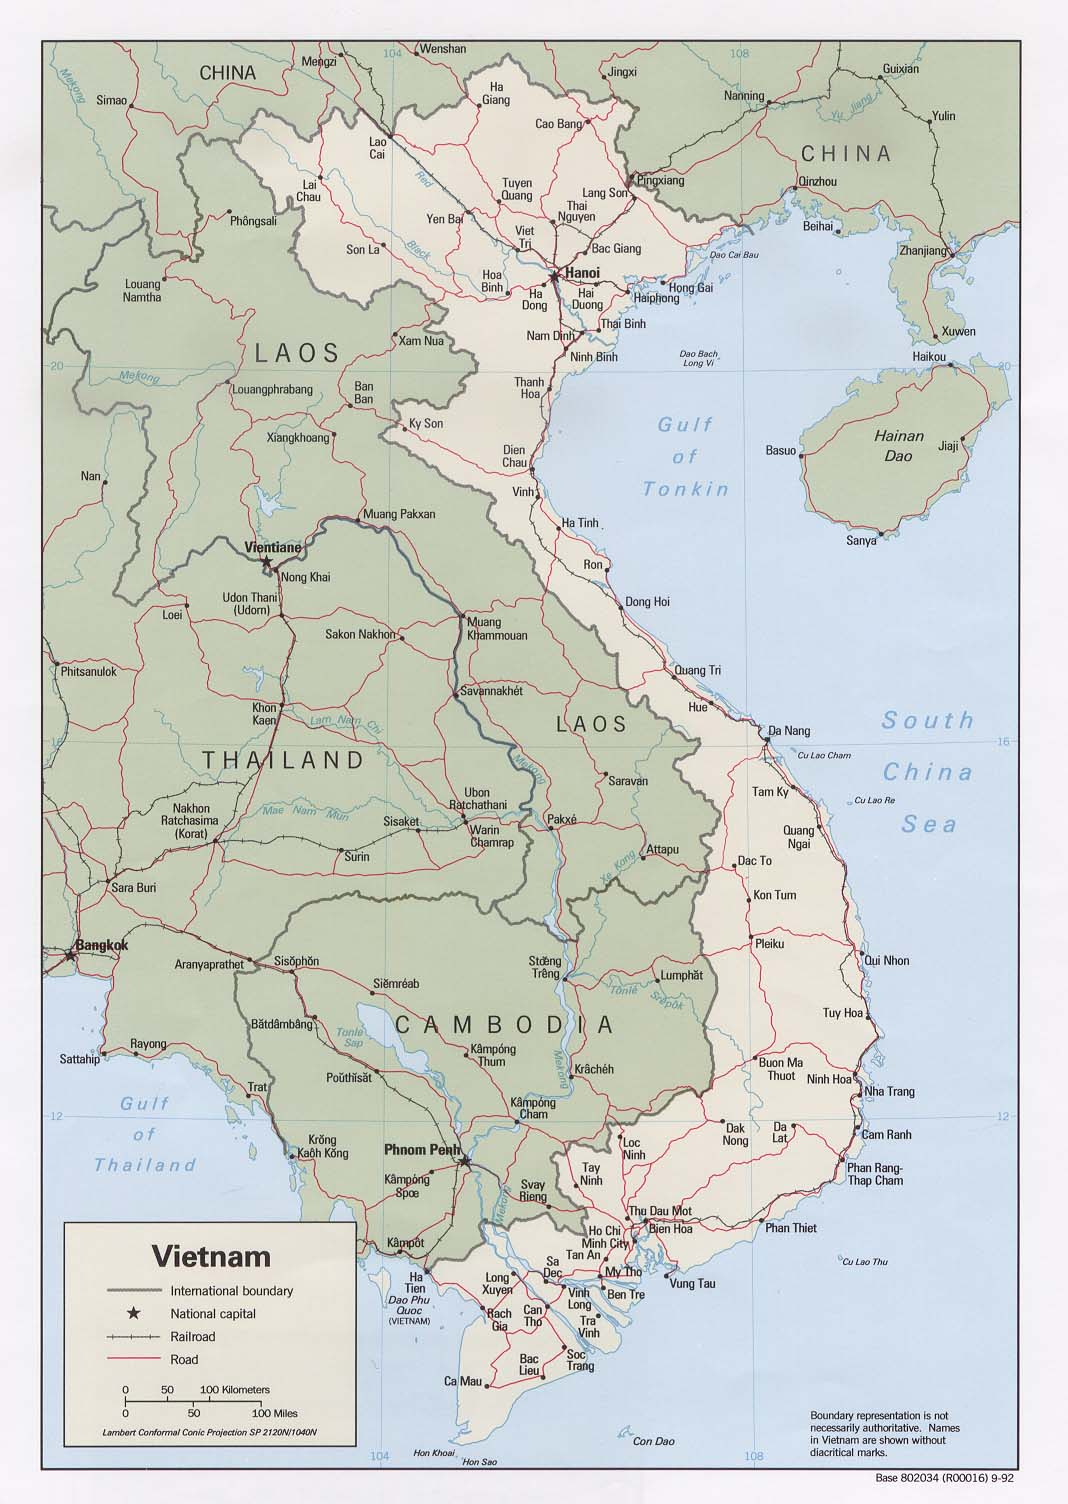 modernization in thailand essay History of thailand essays: some may feel that the loss of many cultural sections of bangkok is a high price to pay in the name of modernization.